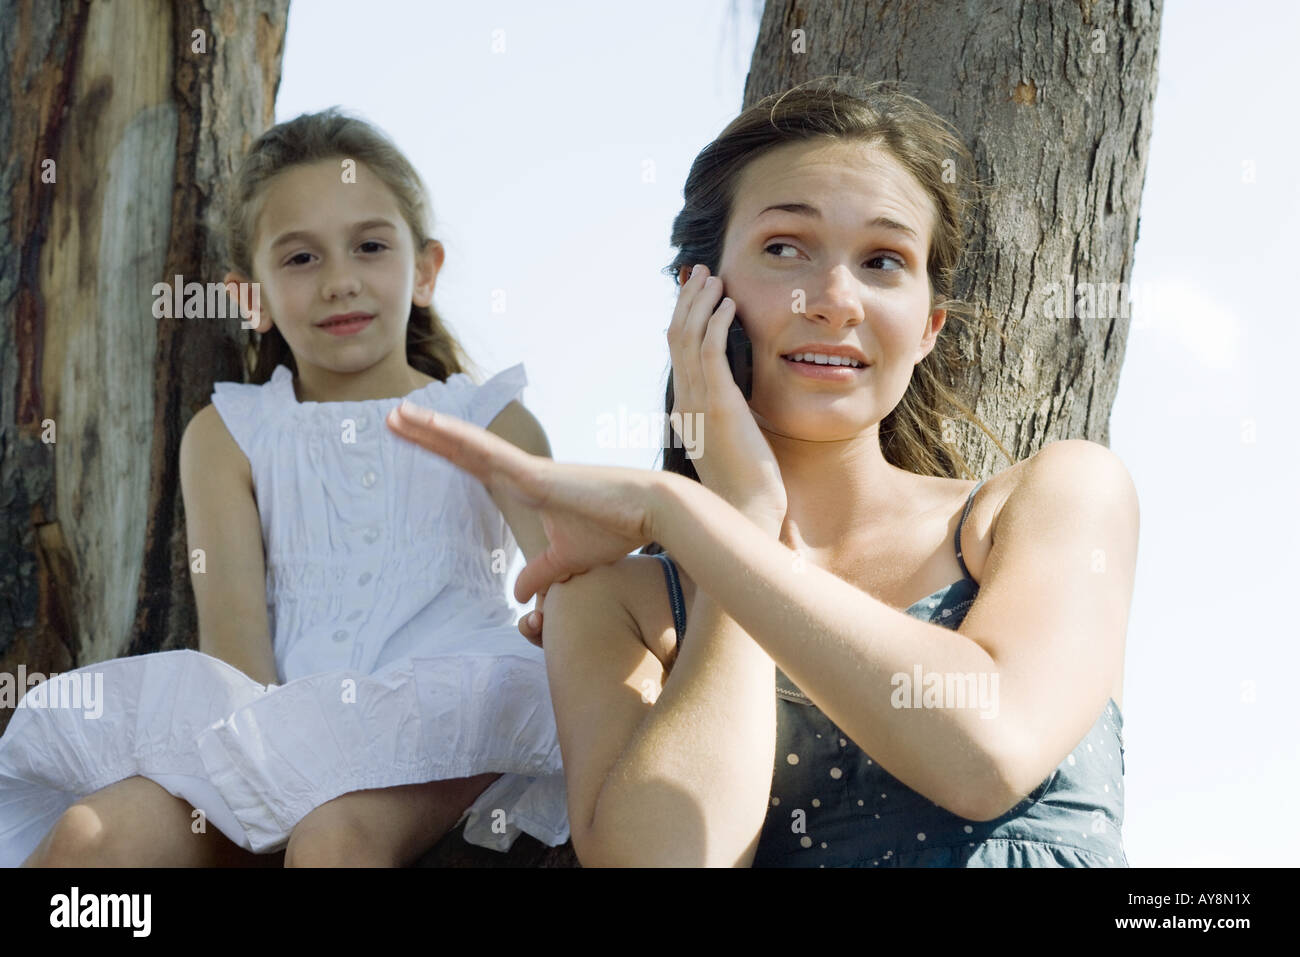 Young woman using cell phone, brushing little sister's hand off her shoulder Stock Photo